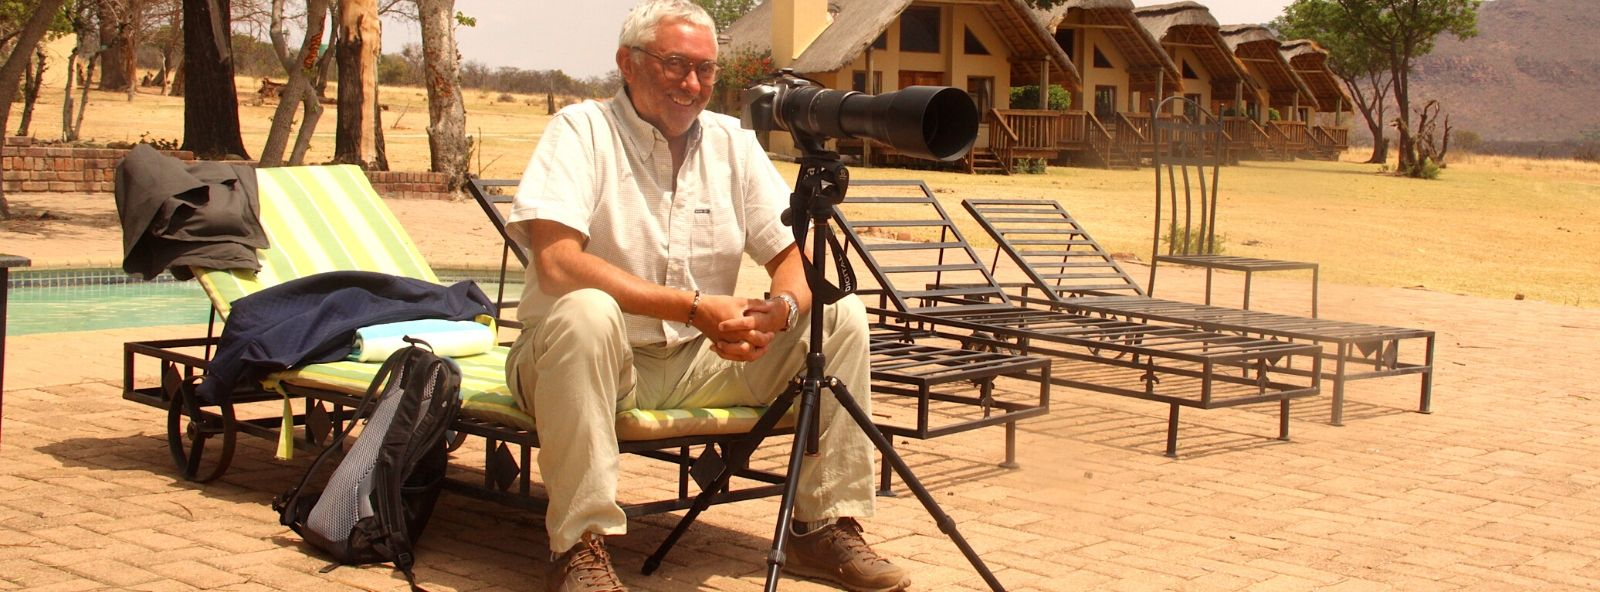 Man sitting with camera outside lodges